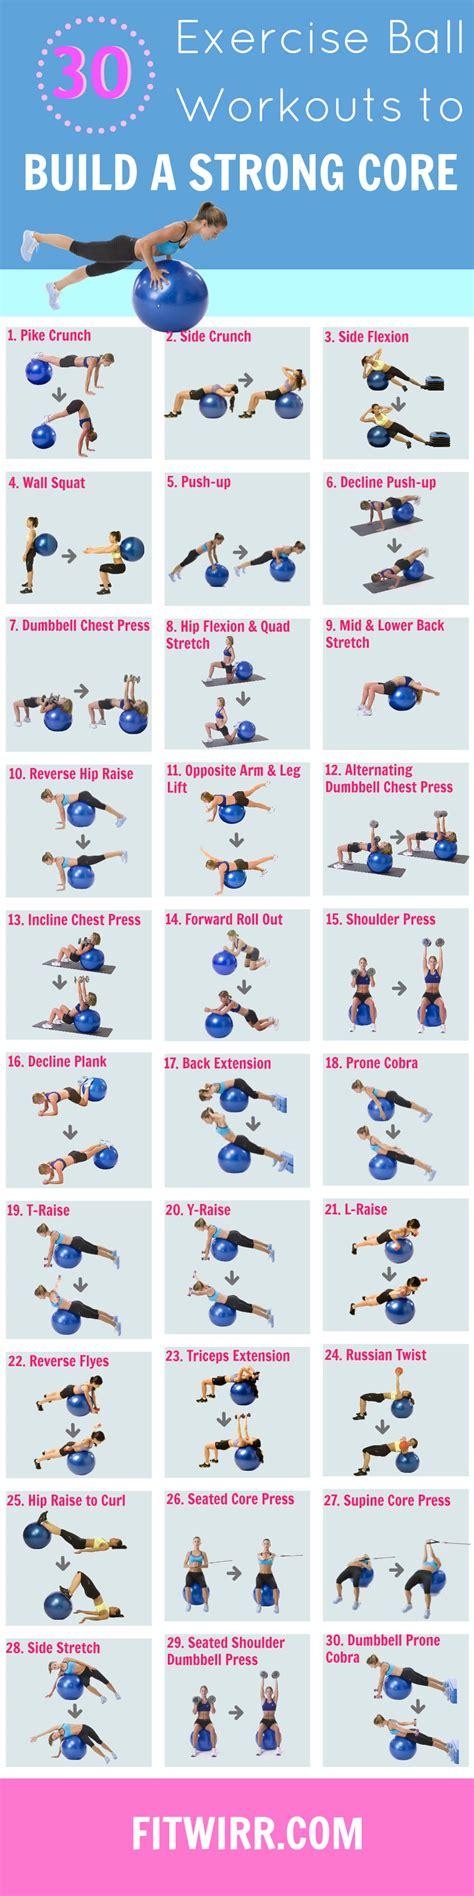 Galerry printable gym ball exercises